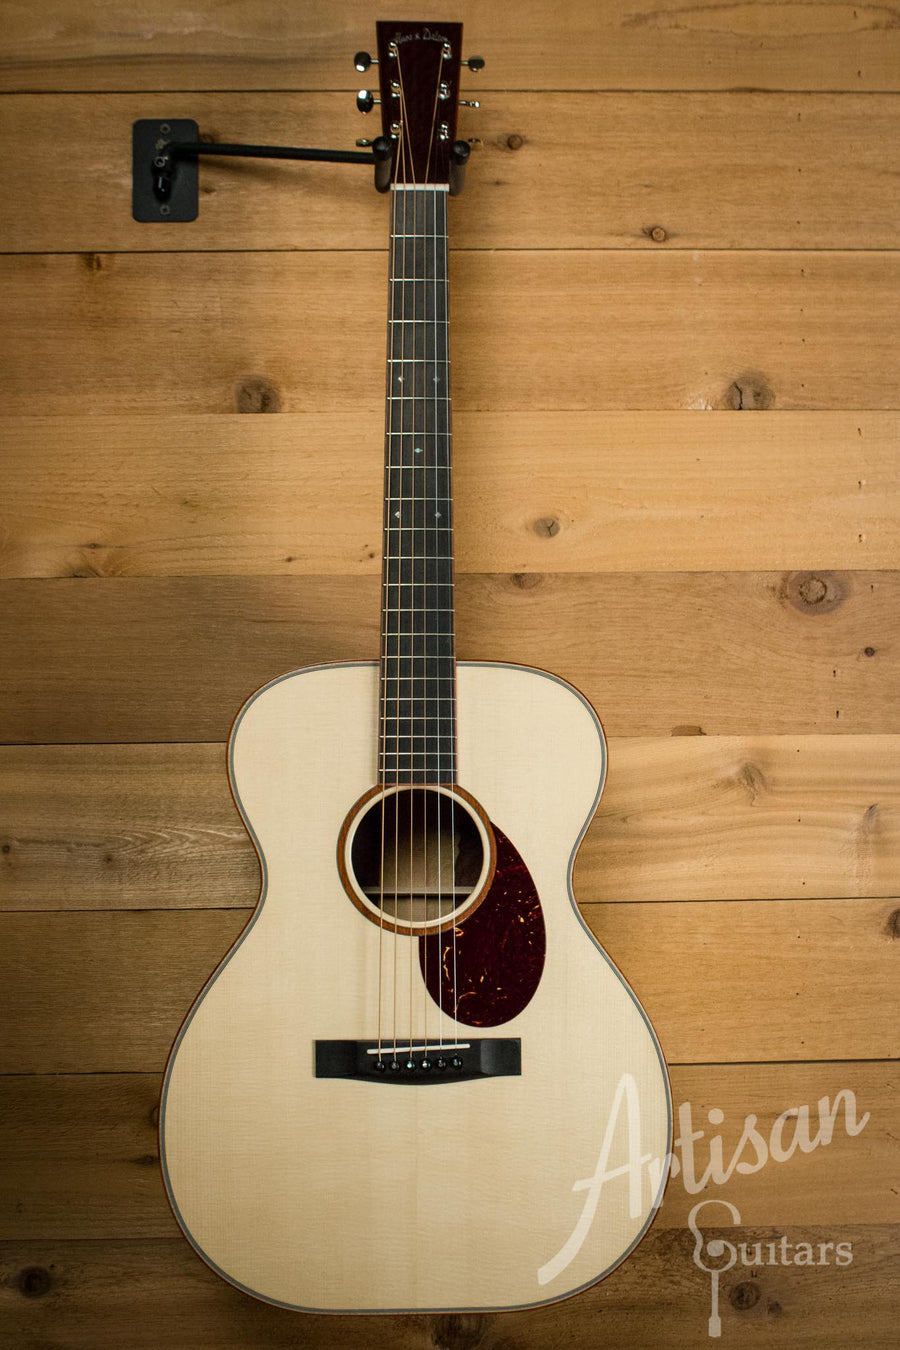 Huss and Dalton TOM-R Traditional OM Custom with Italian Spruce and Katalox Back & Sides Pre-Owned 2014 ID-9178 - Artisan Guitars